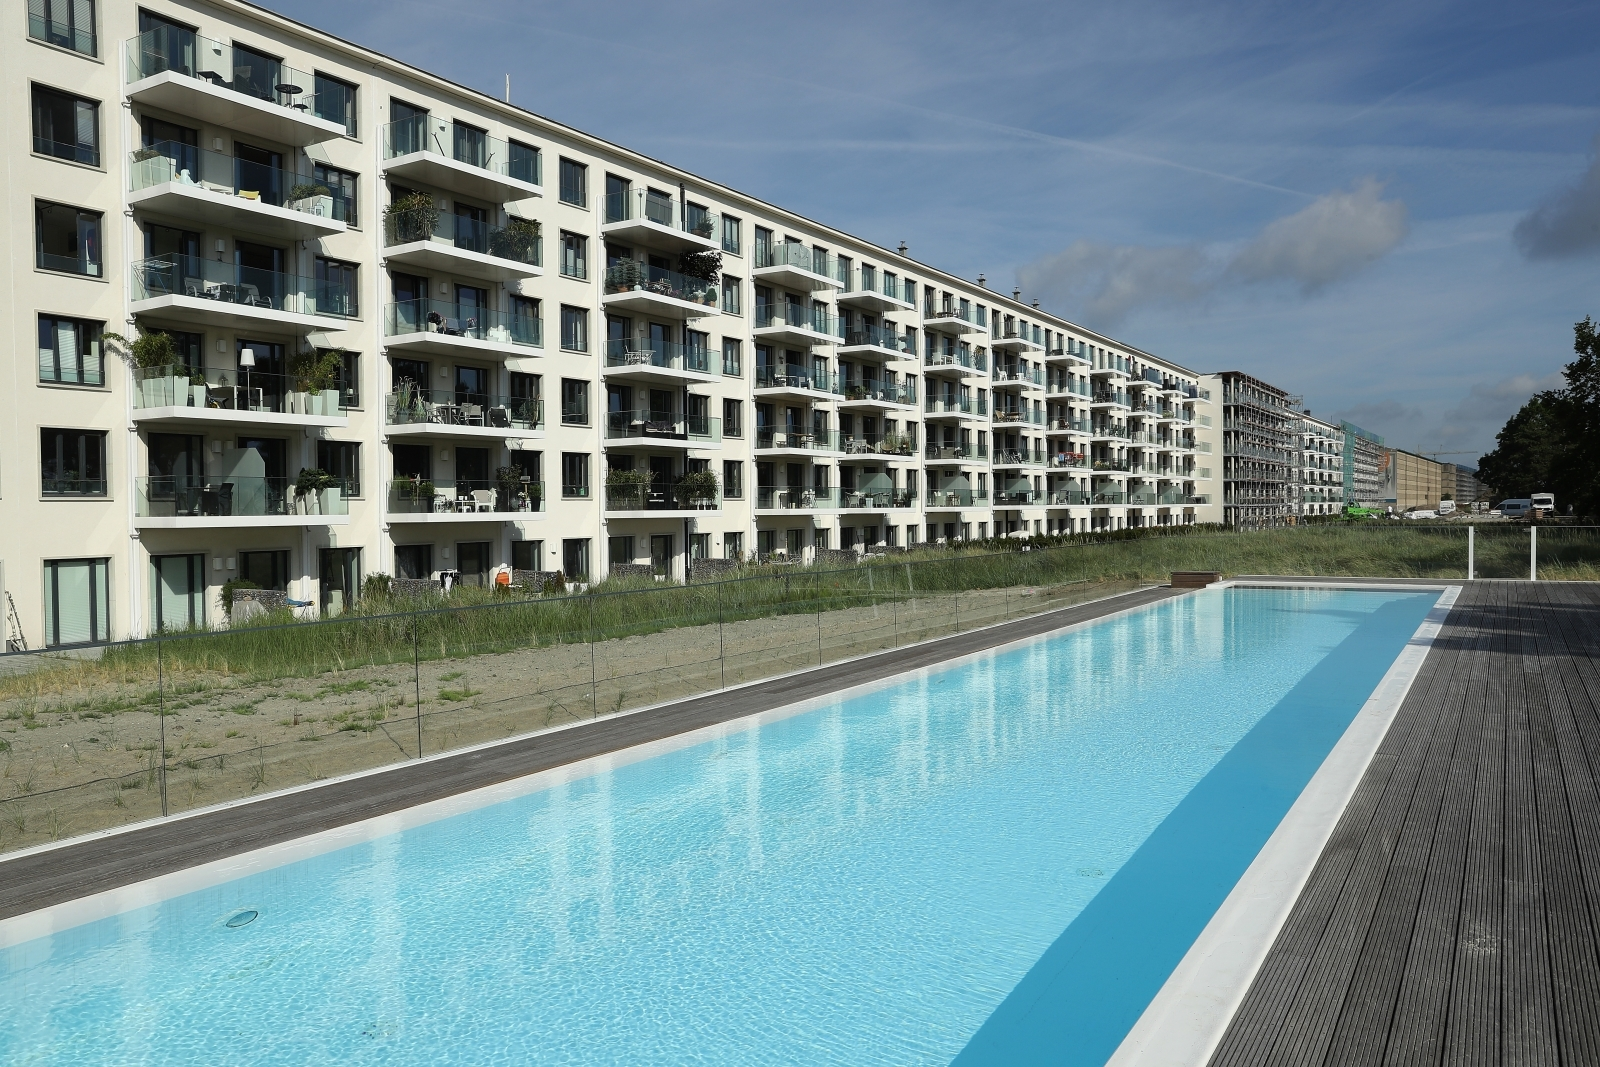 The Prora resort on Rugen houses upmarket airy apartments and huge swimming pools